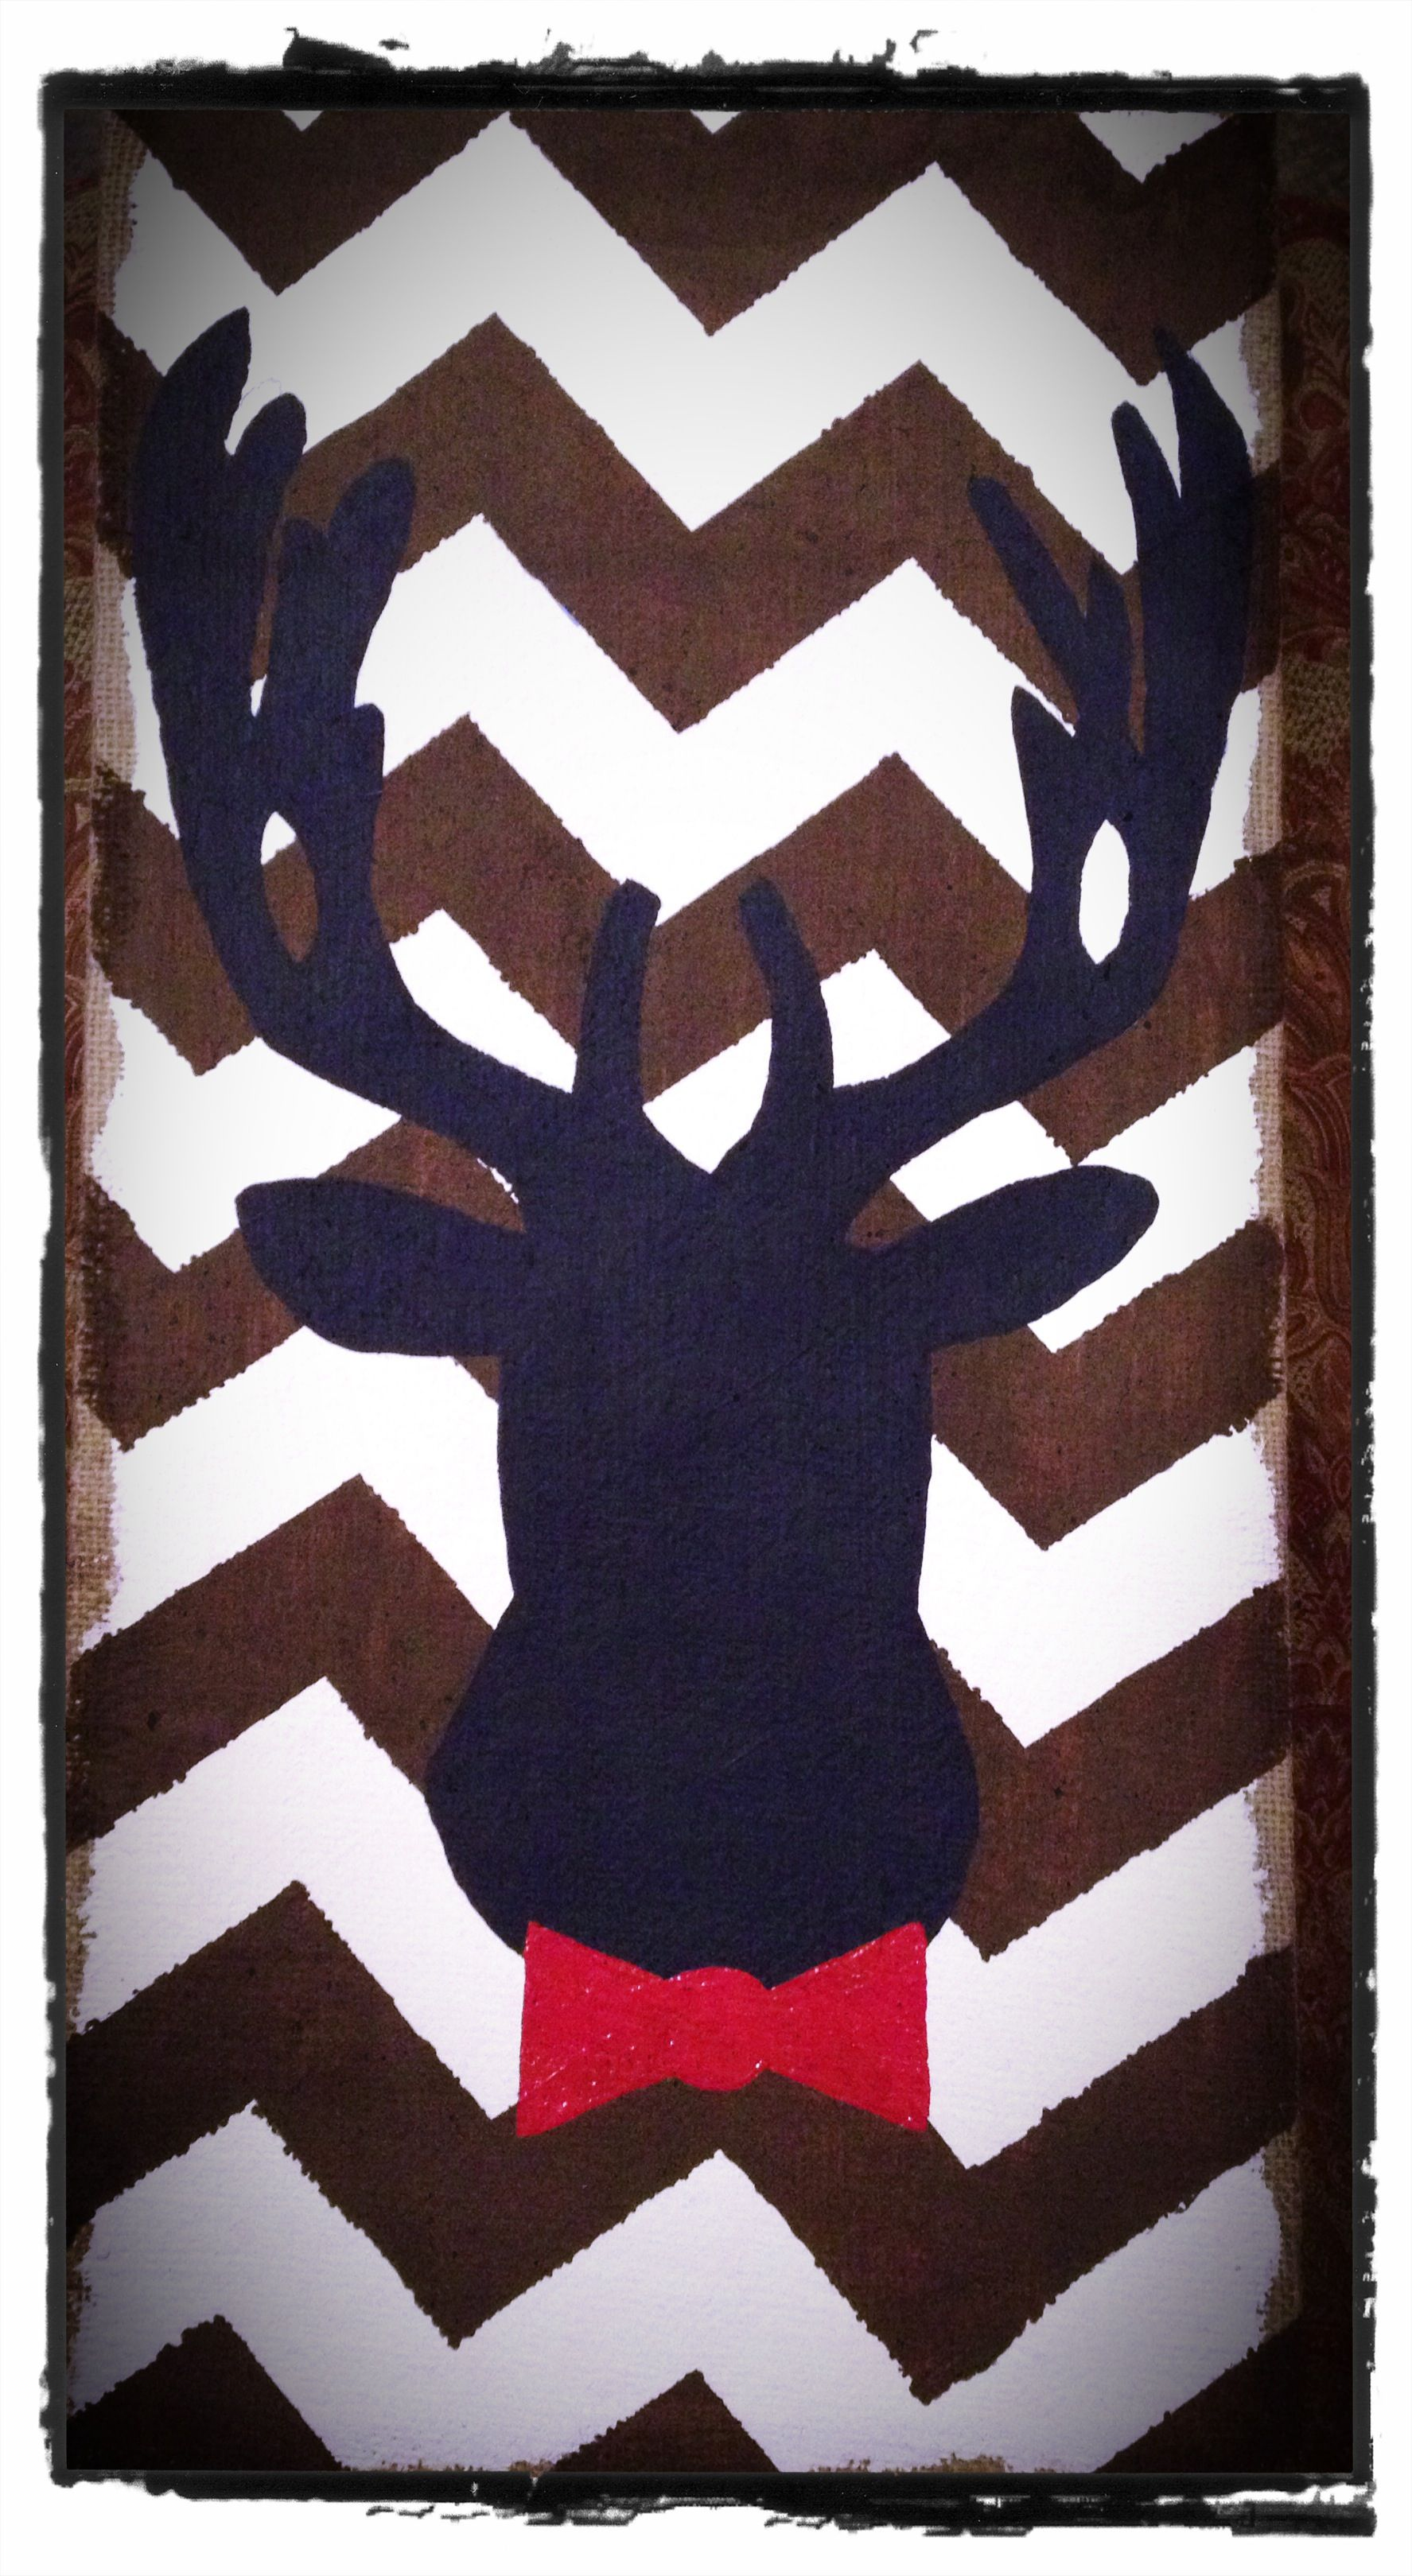 Hand painted deer head silhouette for a little man's nursery Etsy- shop name - KenzieRoseCreations